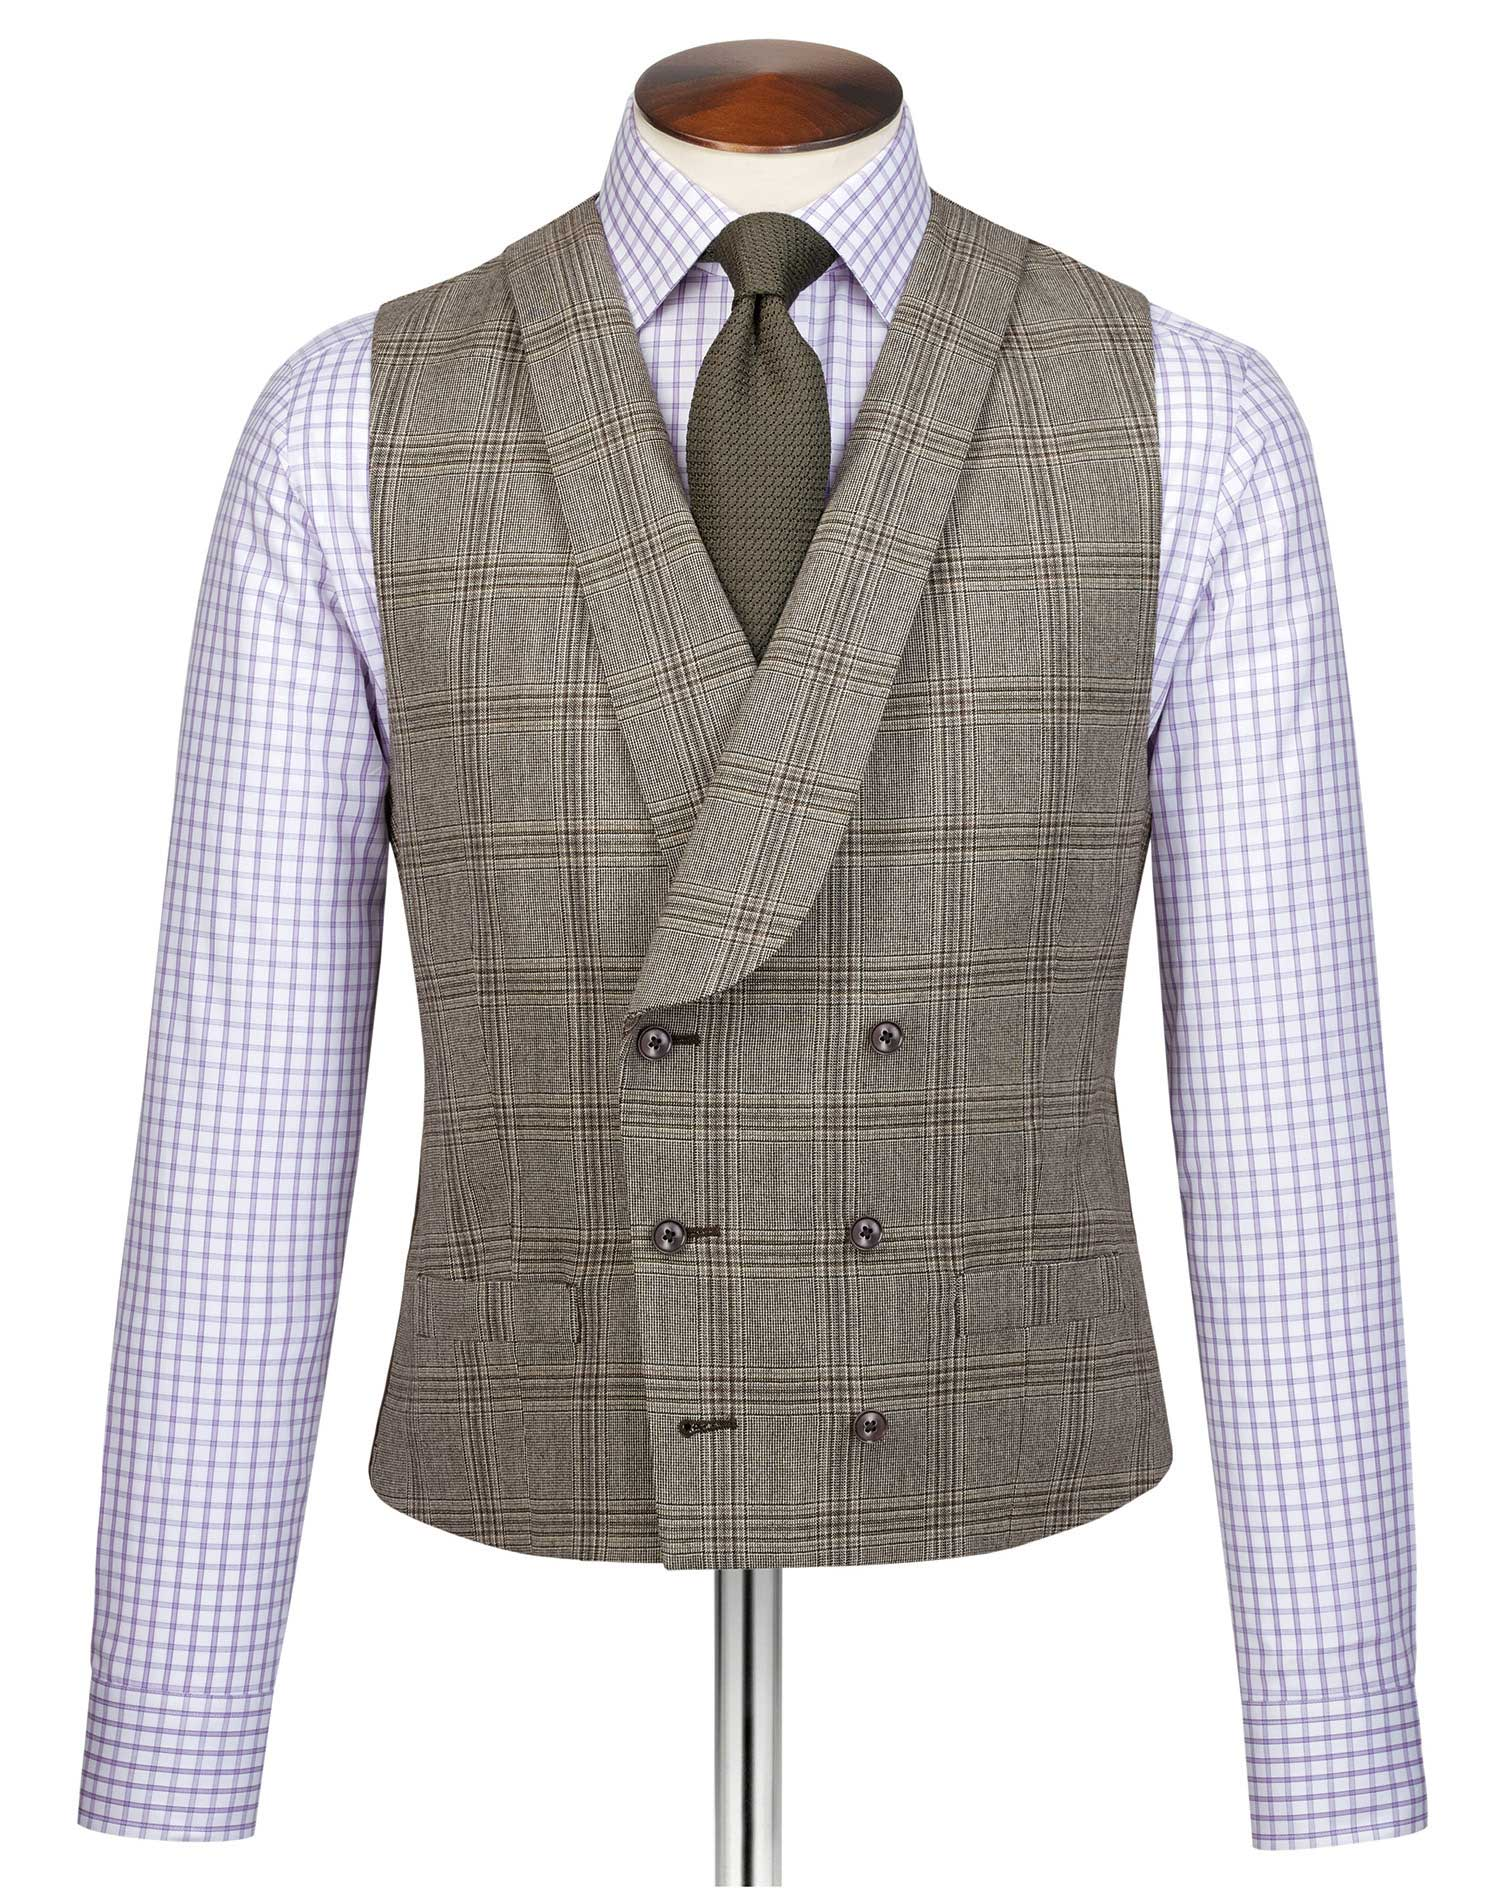 Men's Vintage Vests, Sweater Vests Grey Adjustable Fit British Serge Luxury Suit Wool Waistcoat Size w44 by Charles Tyrwhitt £79.95 AT vintagedancer.com